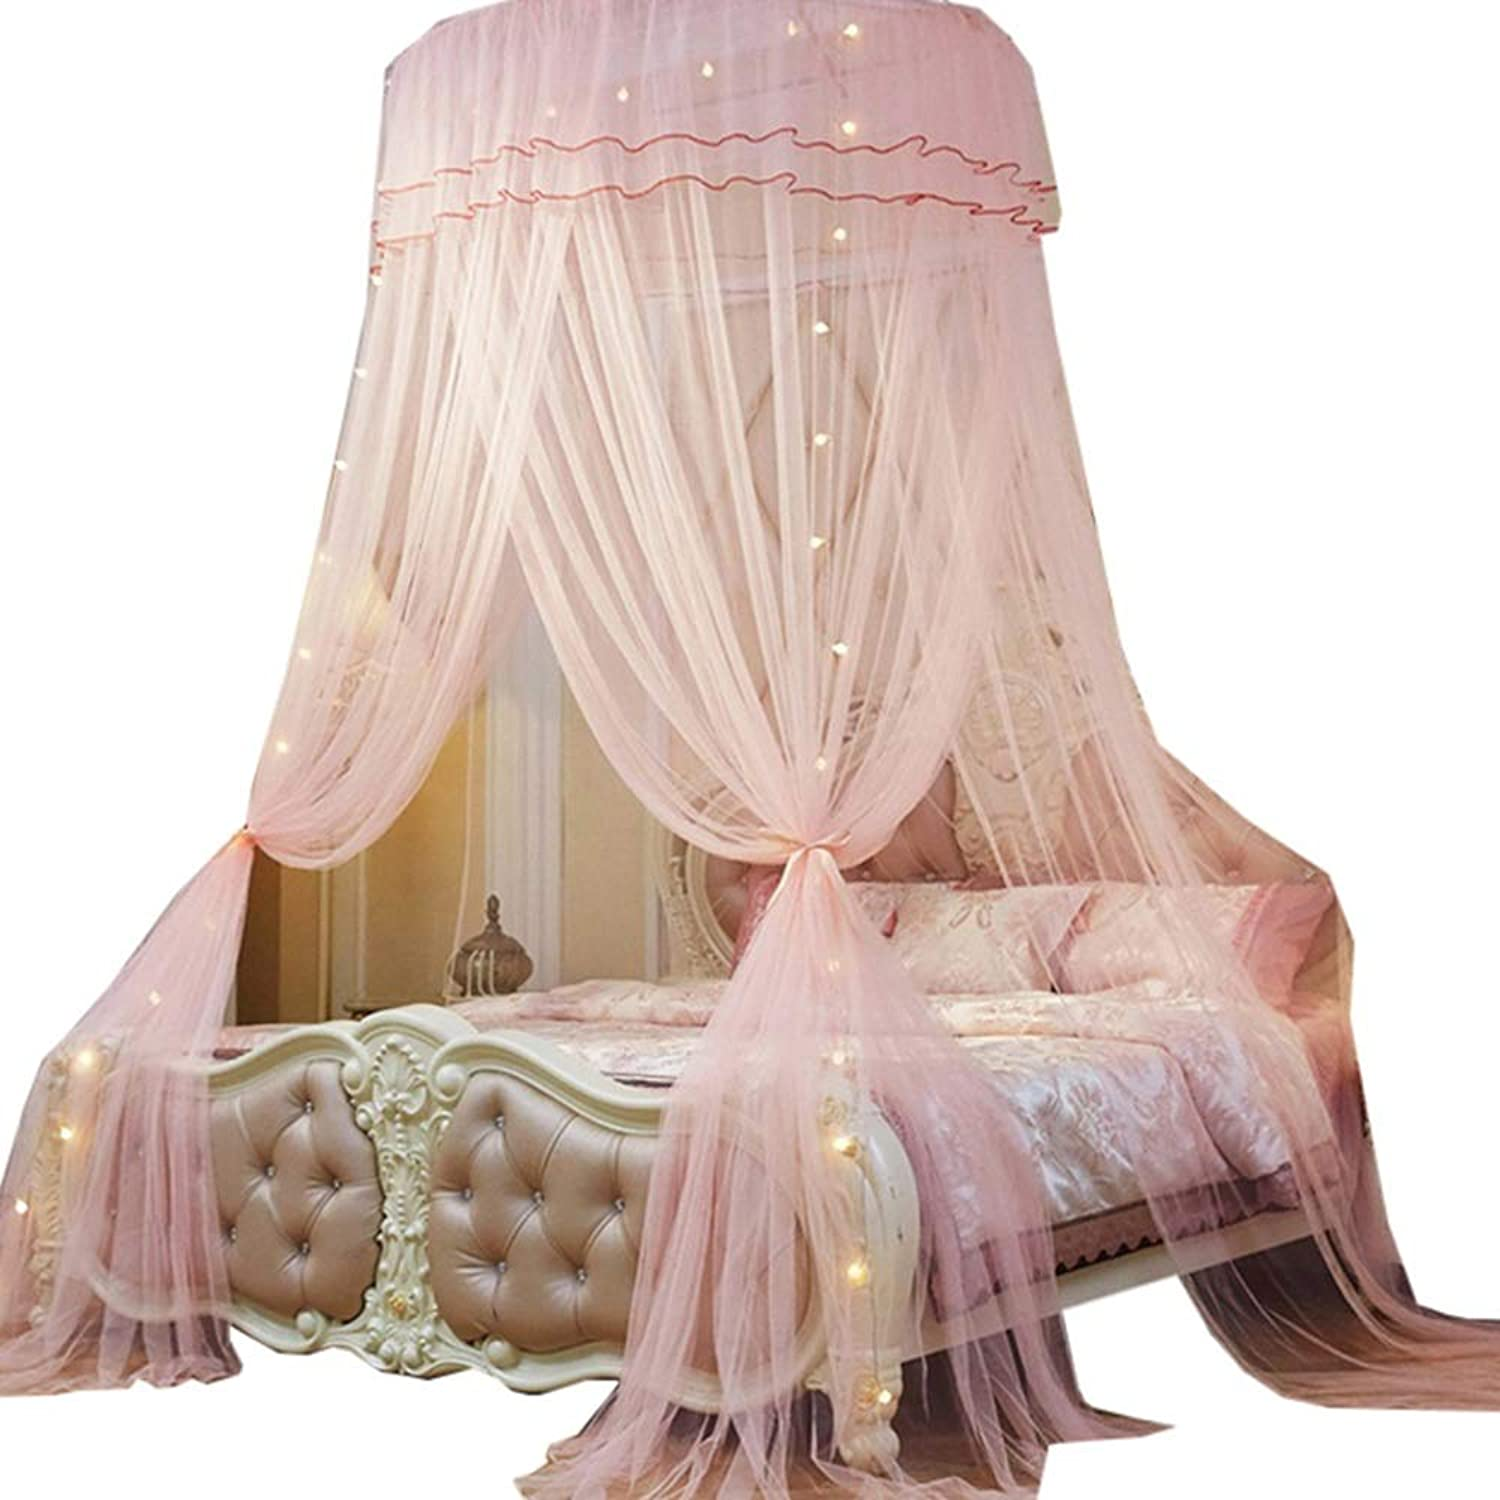 Home Dome Mosquito Net,Princess Mosquito Net for Home and Travel  Easy to Carry & Setup with Free